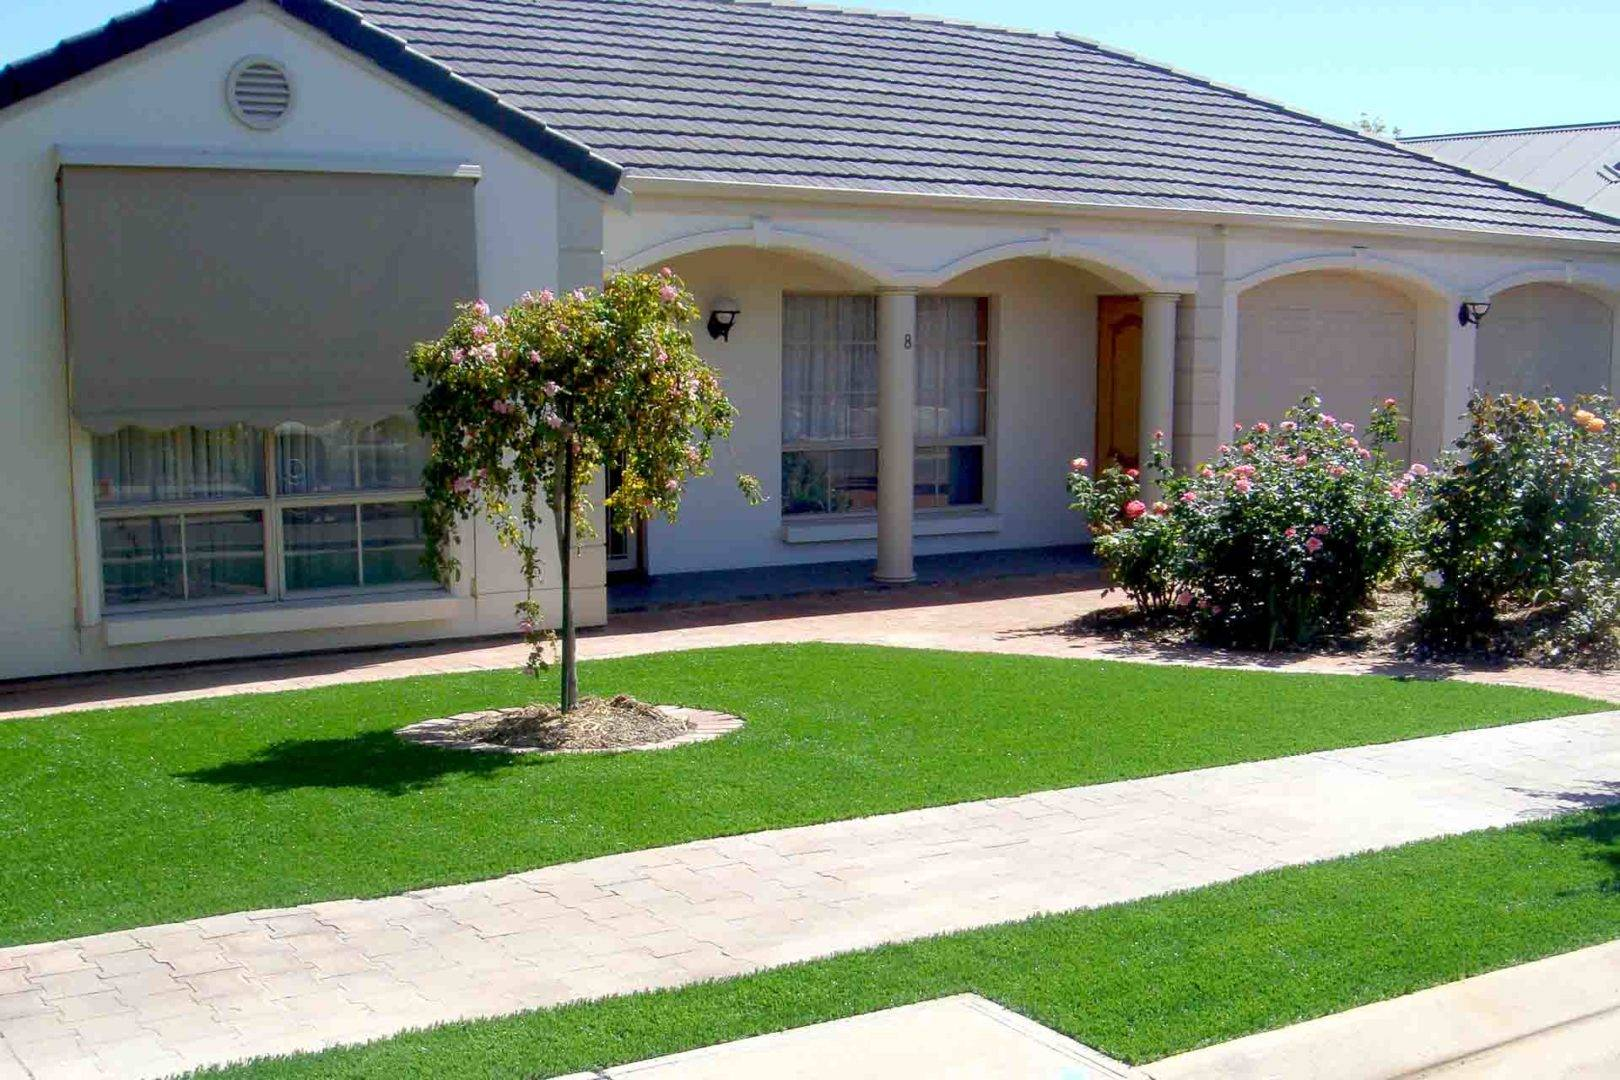 Artificial Grass Lawns, A good choice - The low maintenance alternative, Australian Outdoor Living.